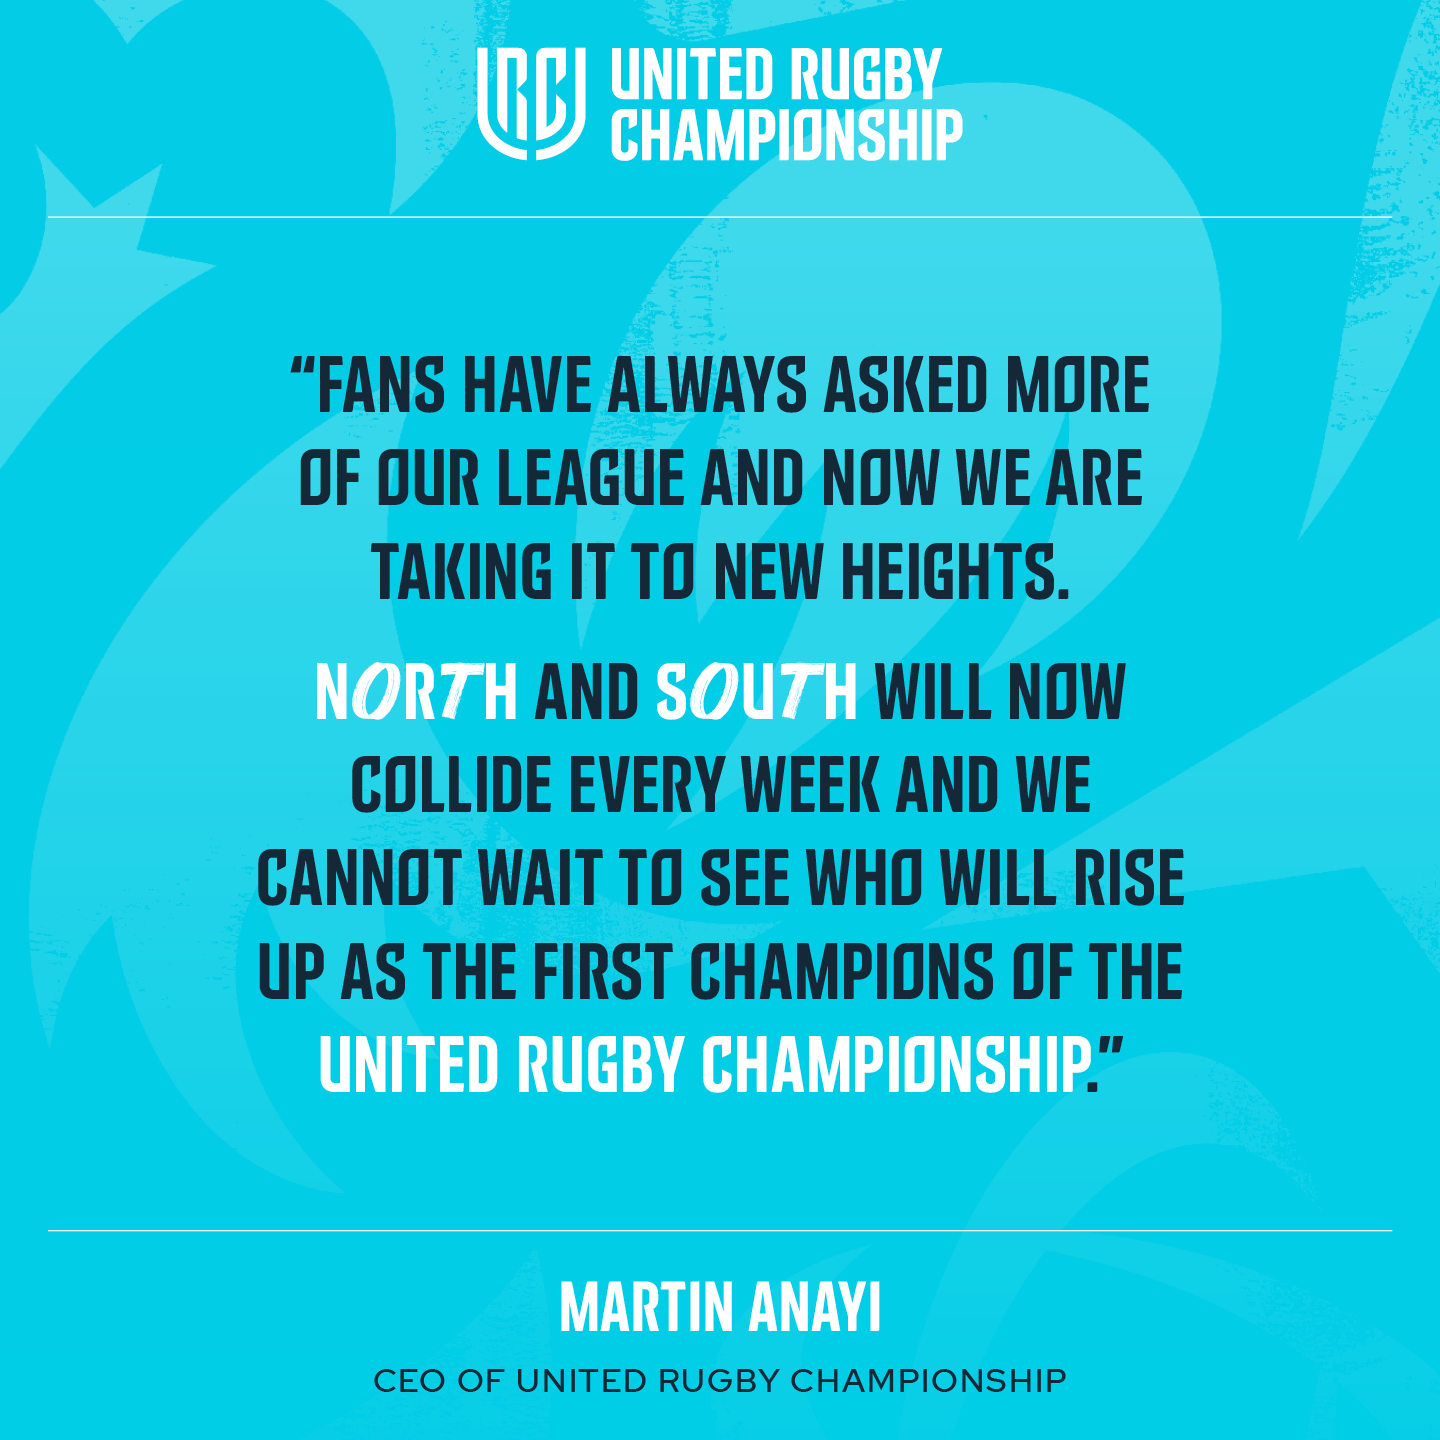 rugby URC Martin Anayi Quote